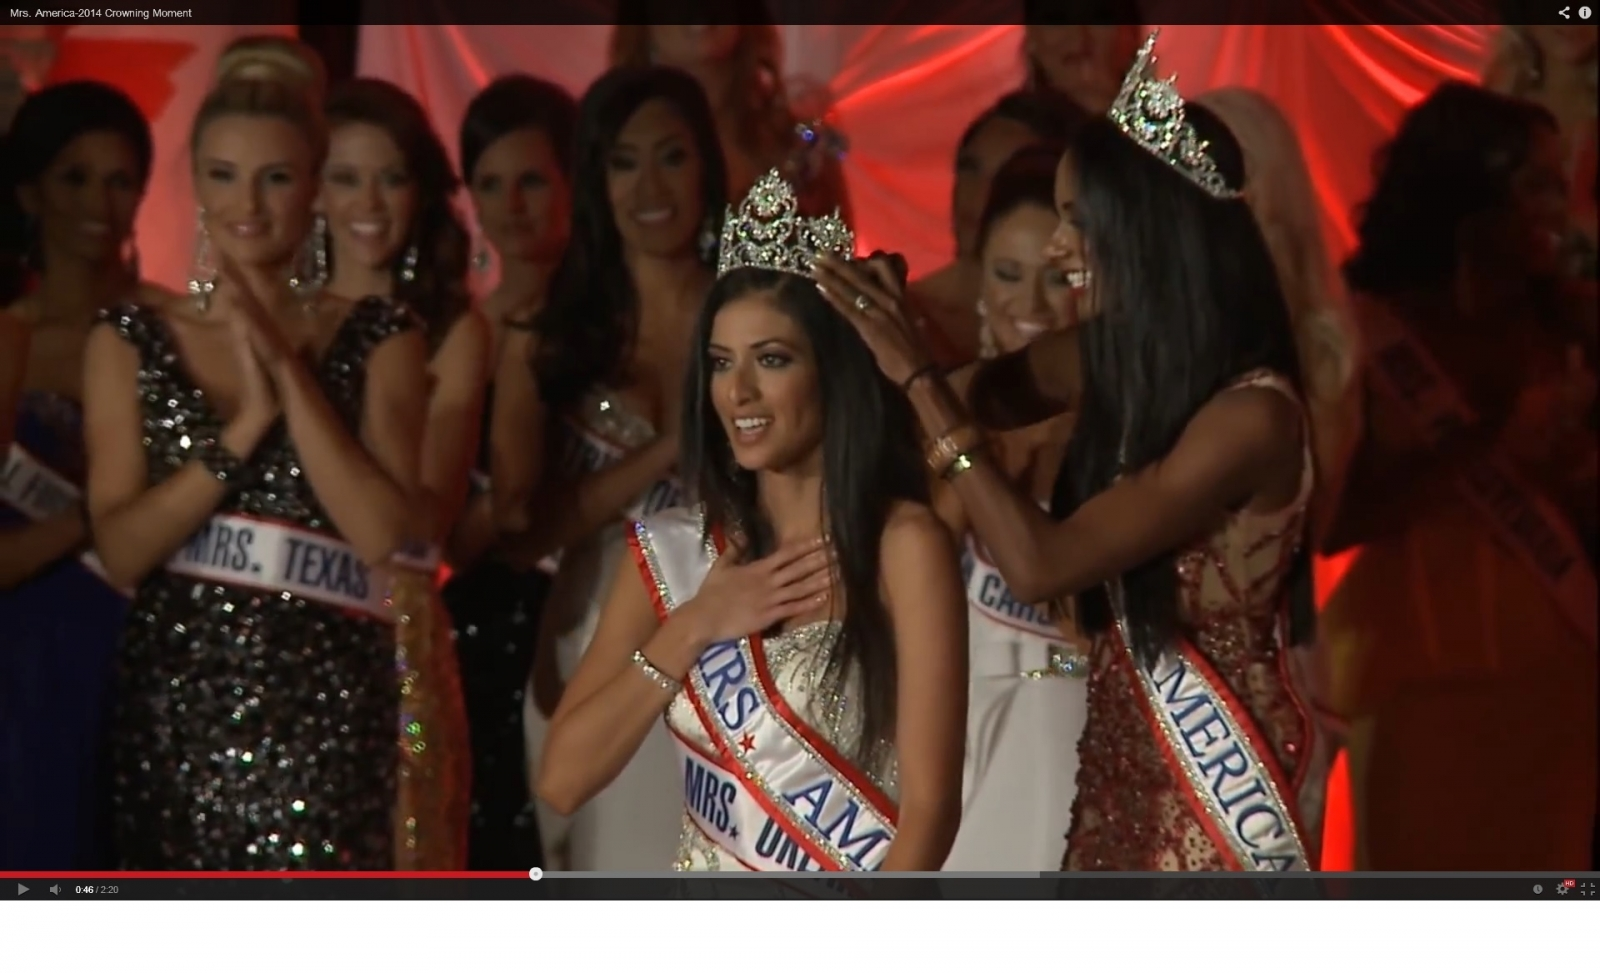 Mrs America 2014 is crowned (YouTube)